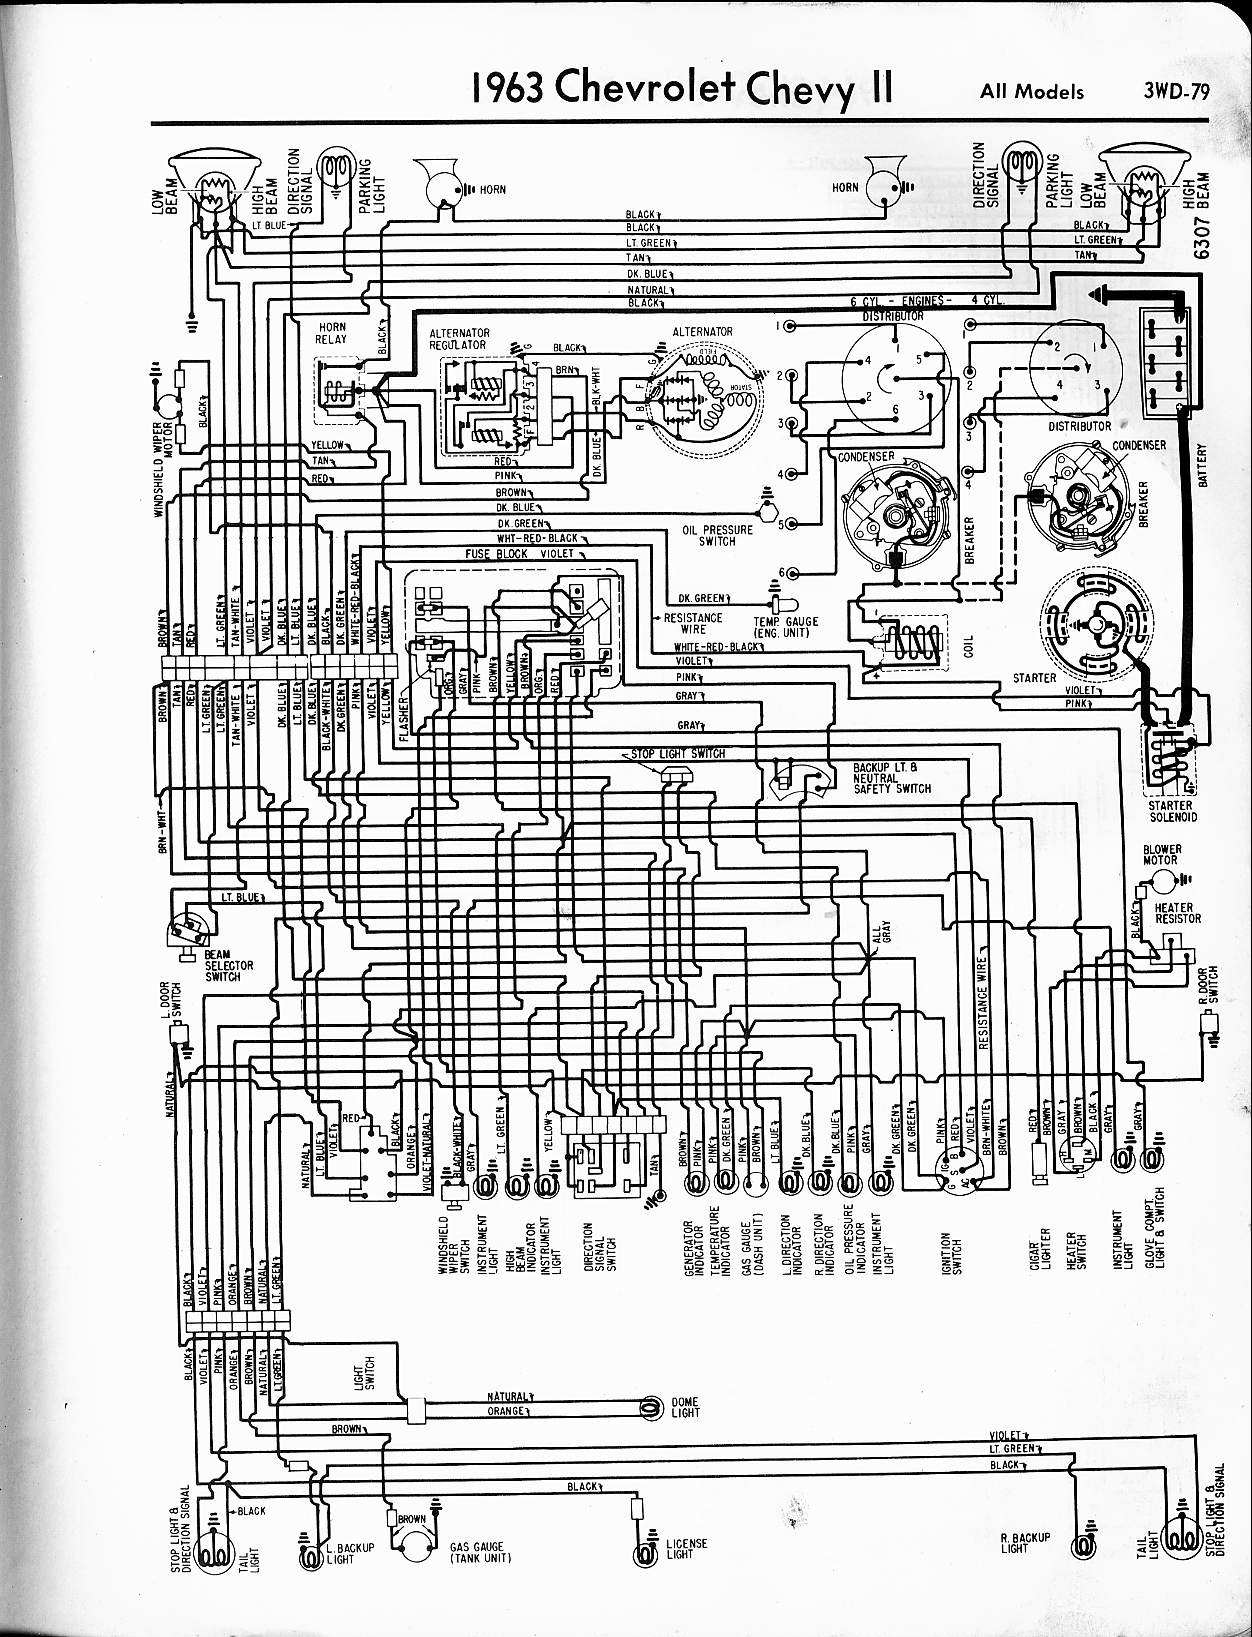 MWireChev63_3WD 079 1963 c10 pickup wiring diagram pdf chevy wiring diagrams \u2022 free 1967 gmc pickup wiring diagram at gsmx.co